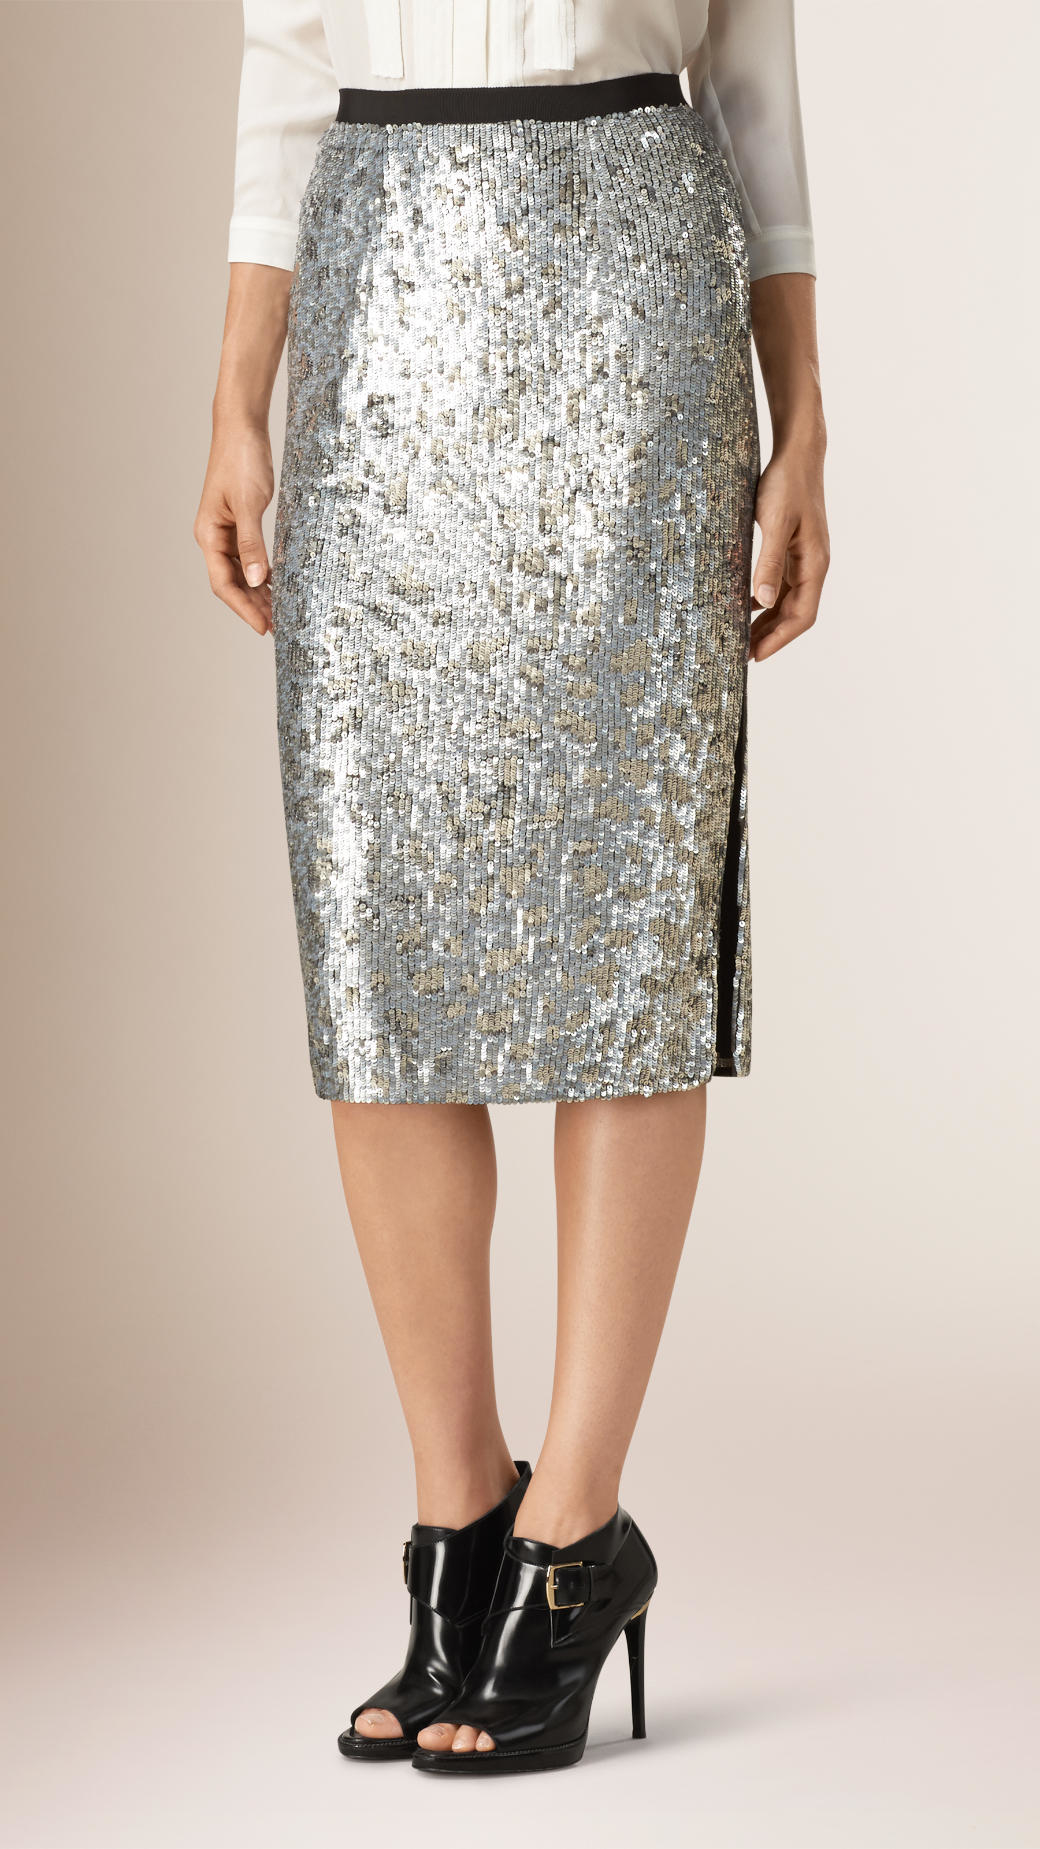 Shine all night in our Glitter Girl skirt! This style features a beautiful mesh overlay with mini sequin glitter throughout. This skirt sits high on the waist and has a notched split .